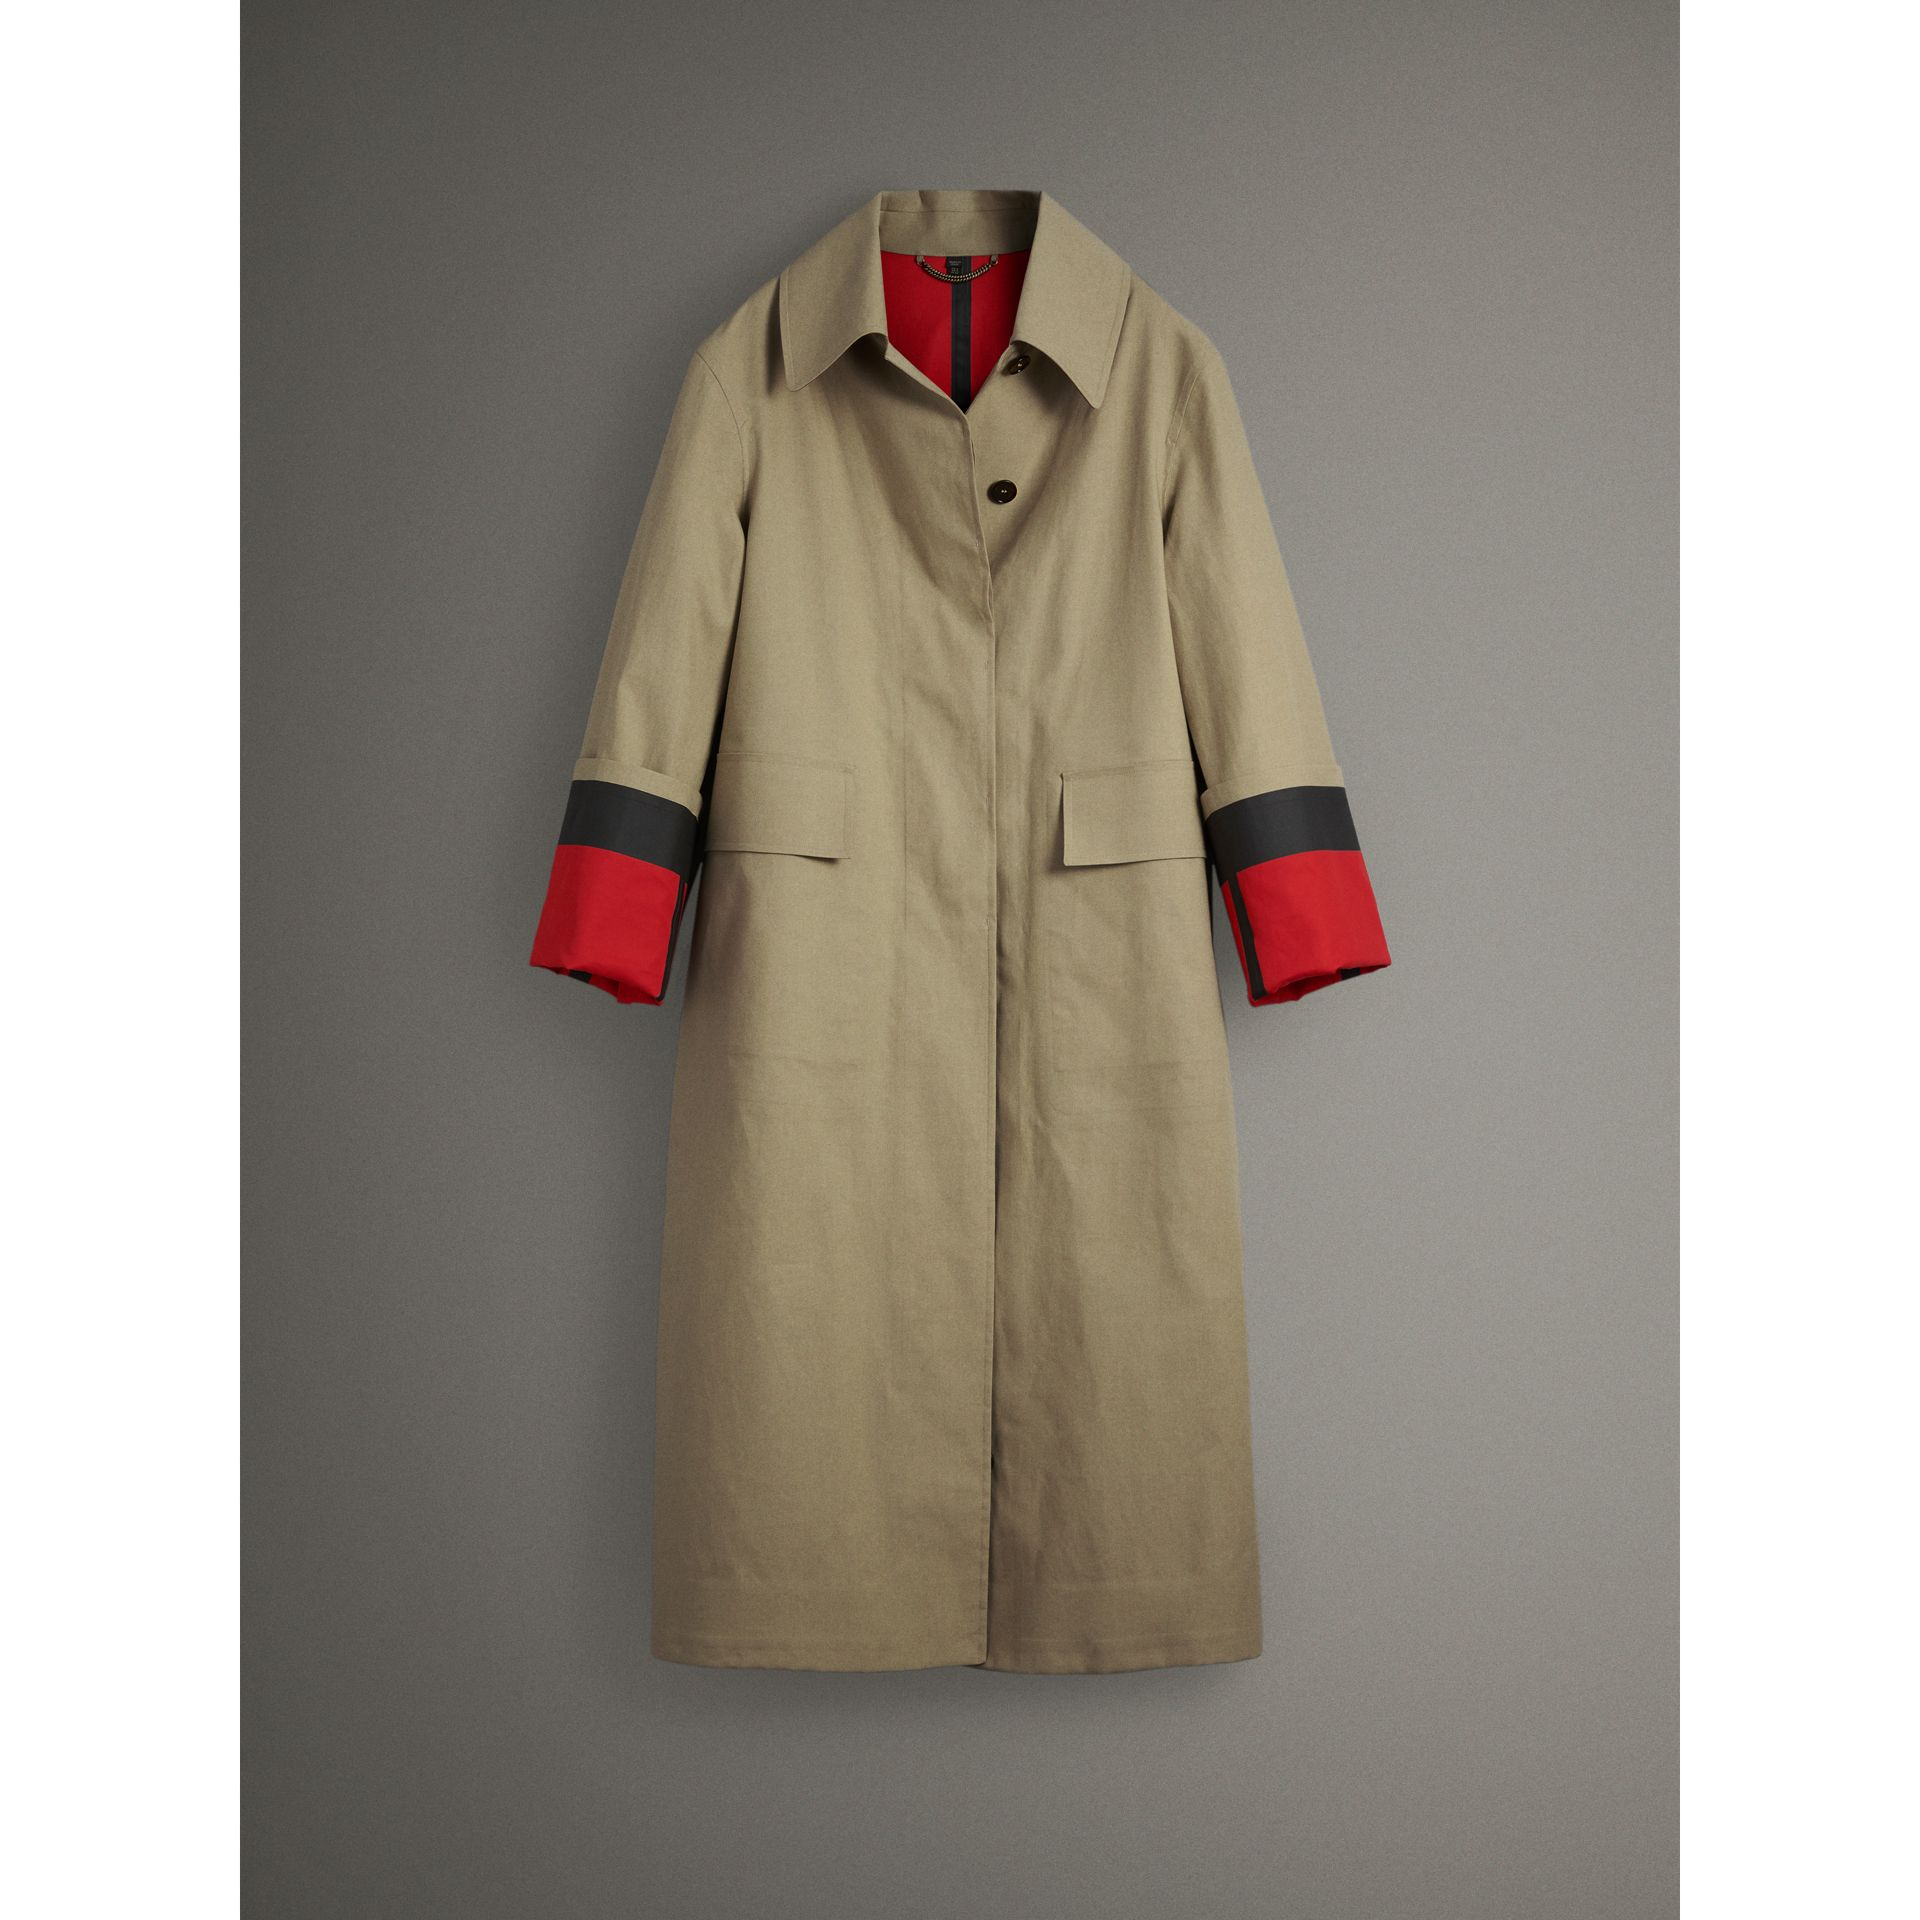 Bonded Cotton Poplin Seam-sealed Car Coat in Beige/red - Women | Burberry - gallery image 3